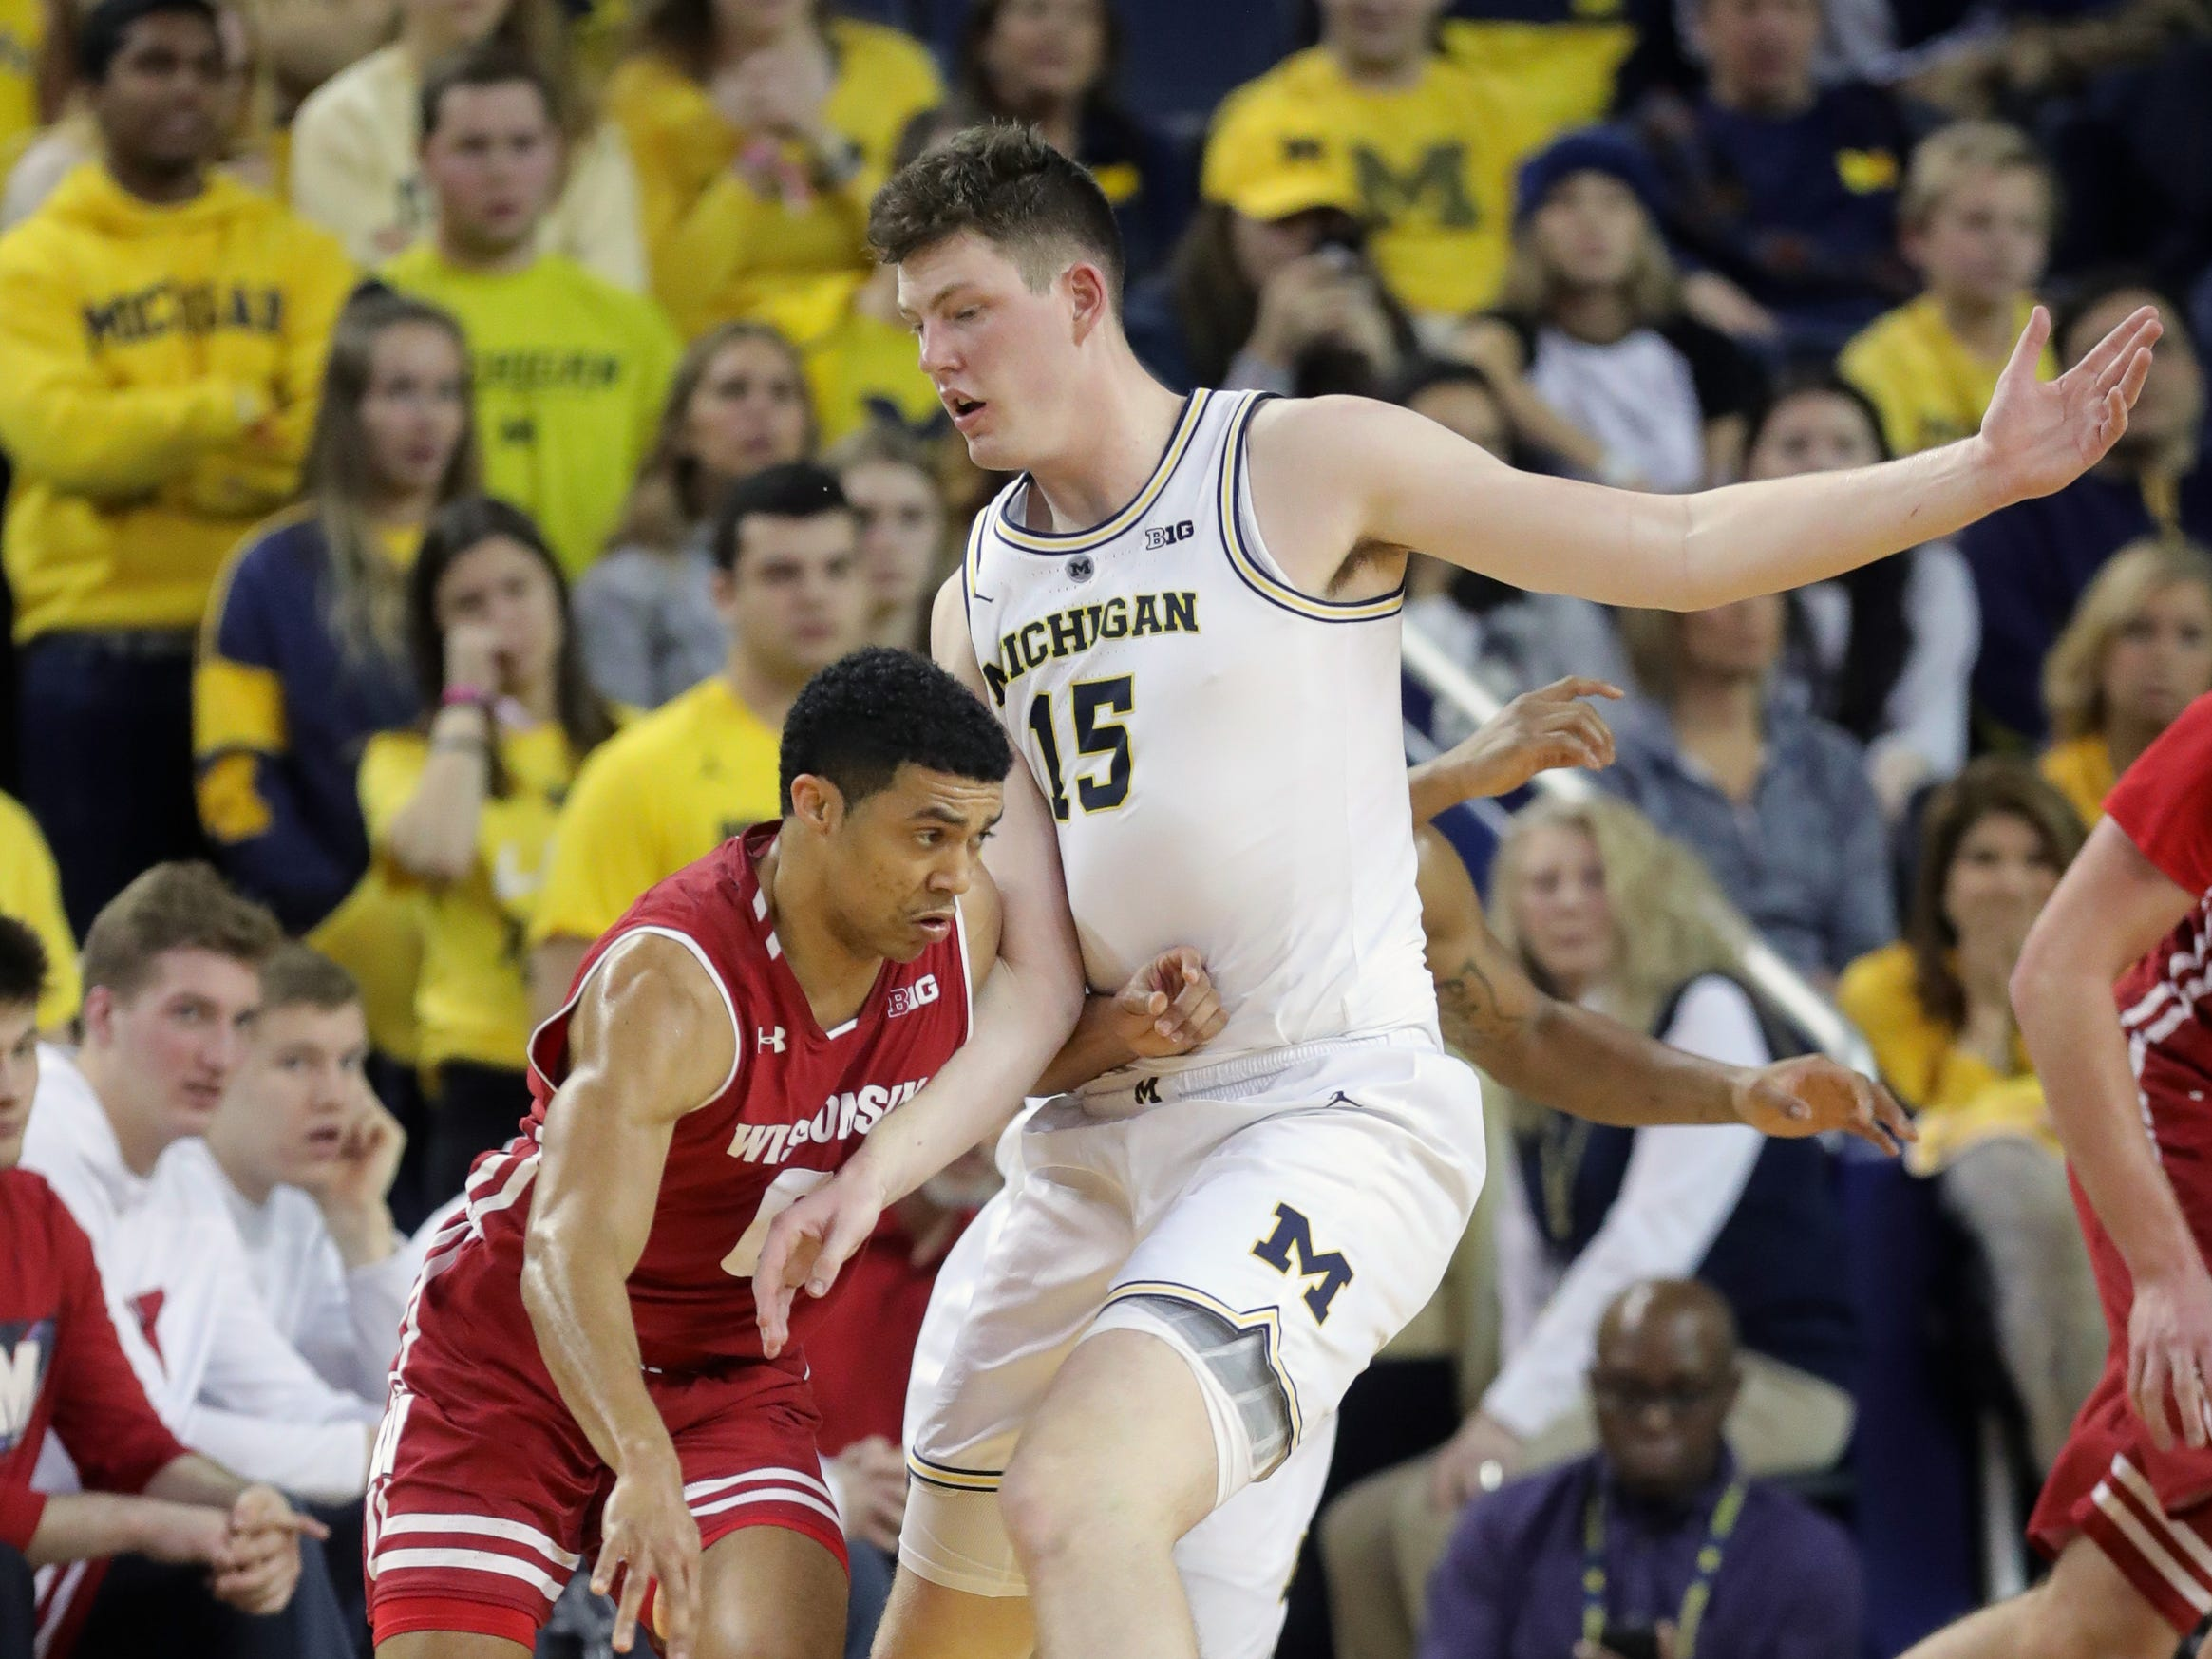 Michigan center Jon Teske defends against Wisconsin guard D'Mitrik Trice during the second half Saturday, Feb. 9, 2019 at the Crisler Center.